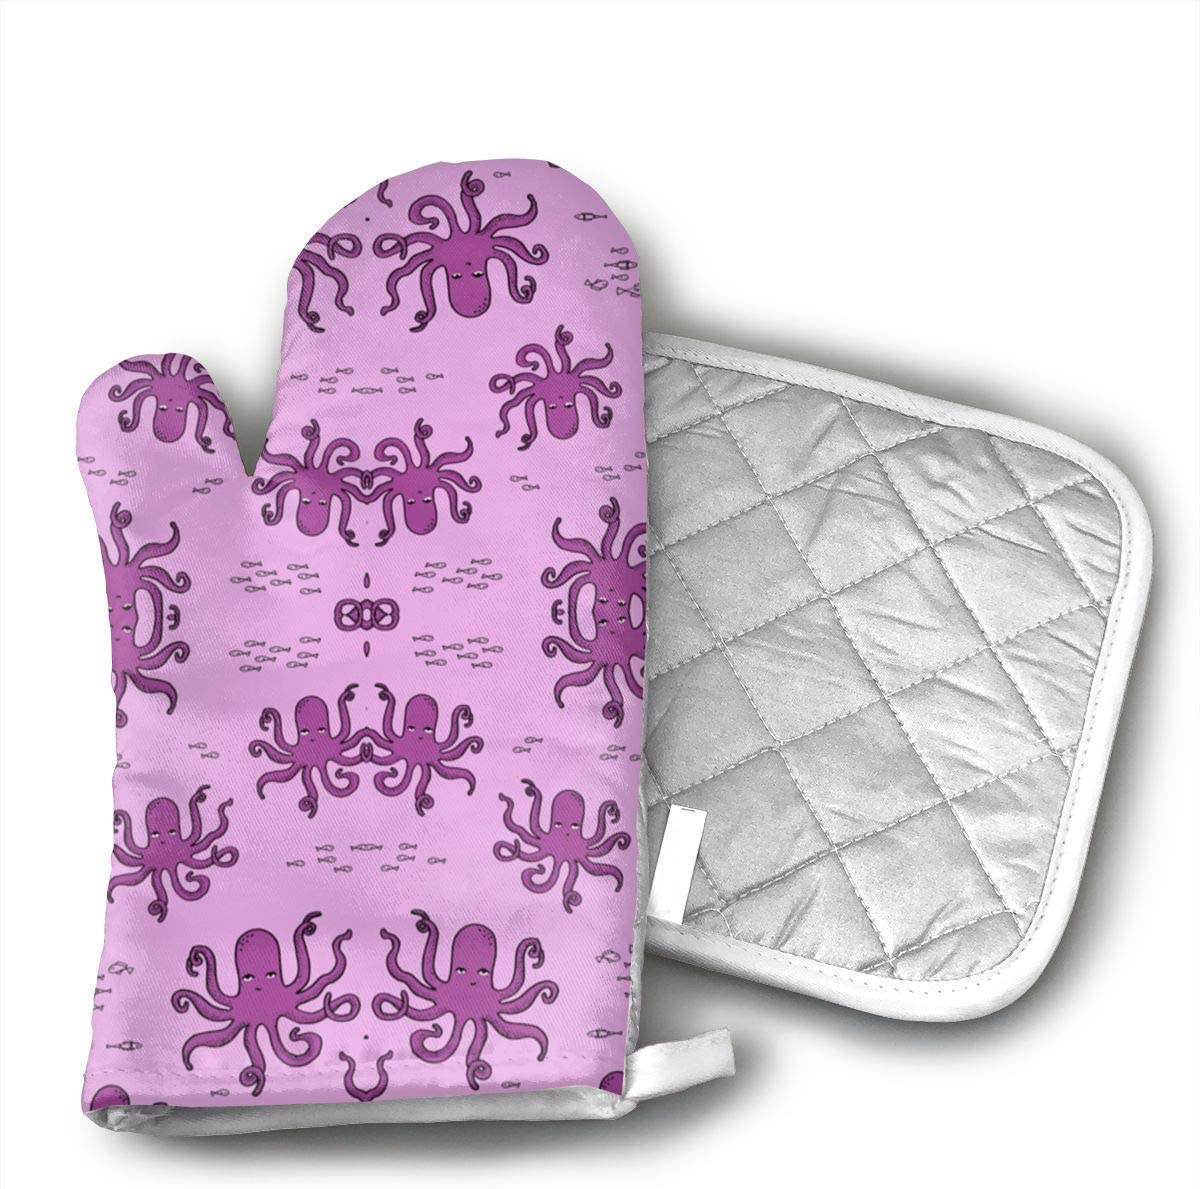 Teuwia Octopus Purples Octopi Fabric Ocean Animals Baby Oven Mitts and Pot Holders Baking Oven Gloves Hot Pads Set Heat Resistant for Finger Hand Wrist Protection